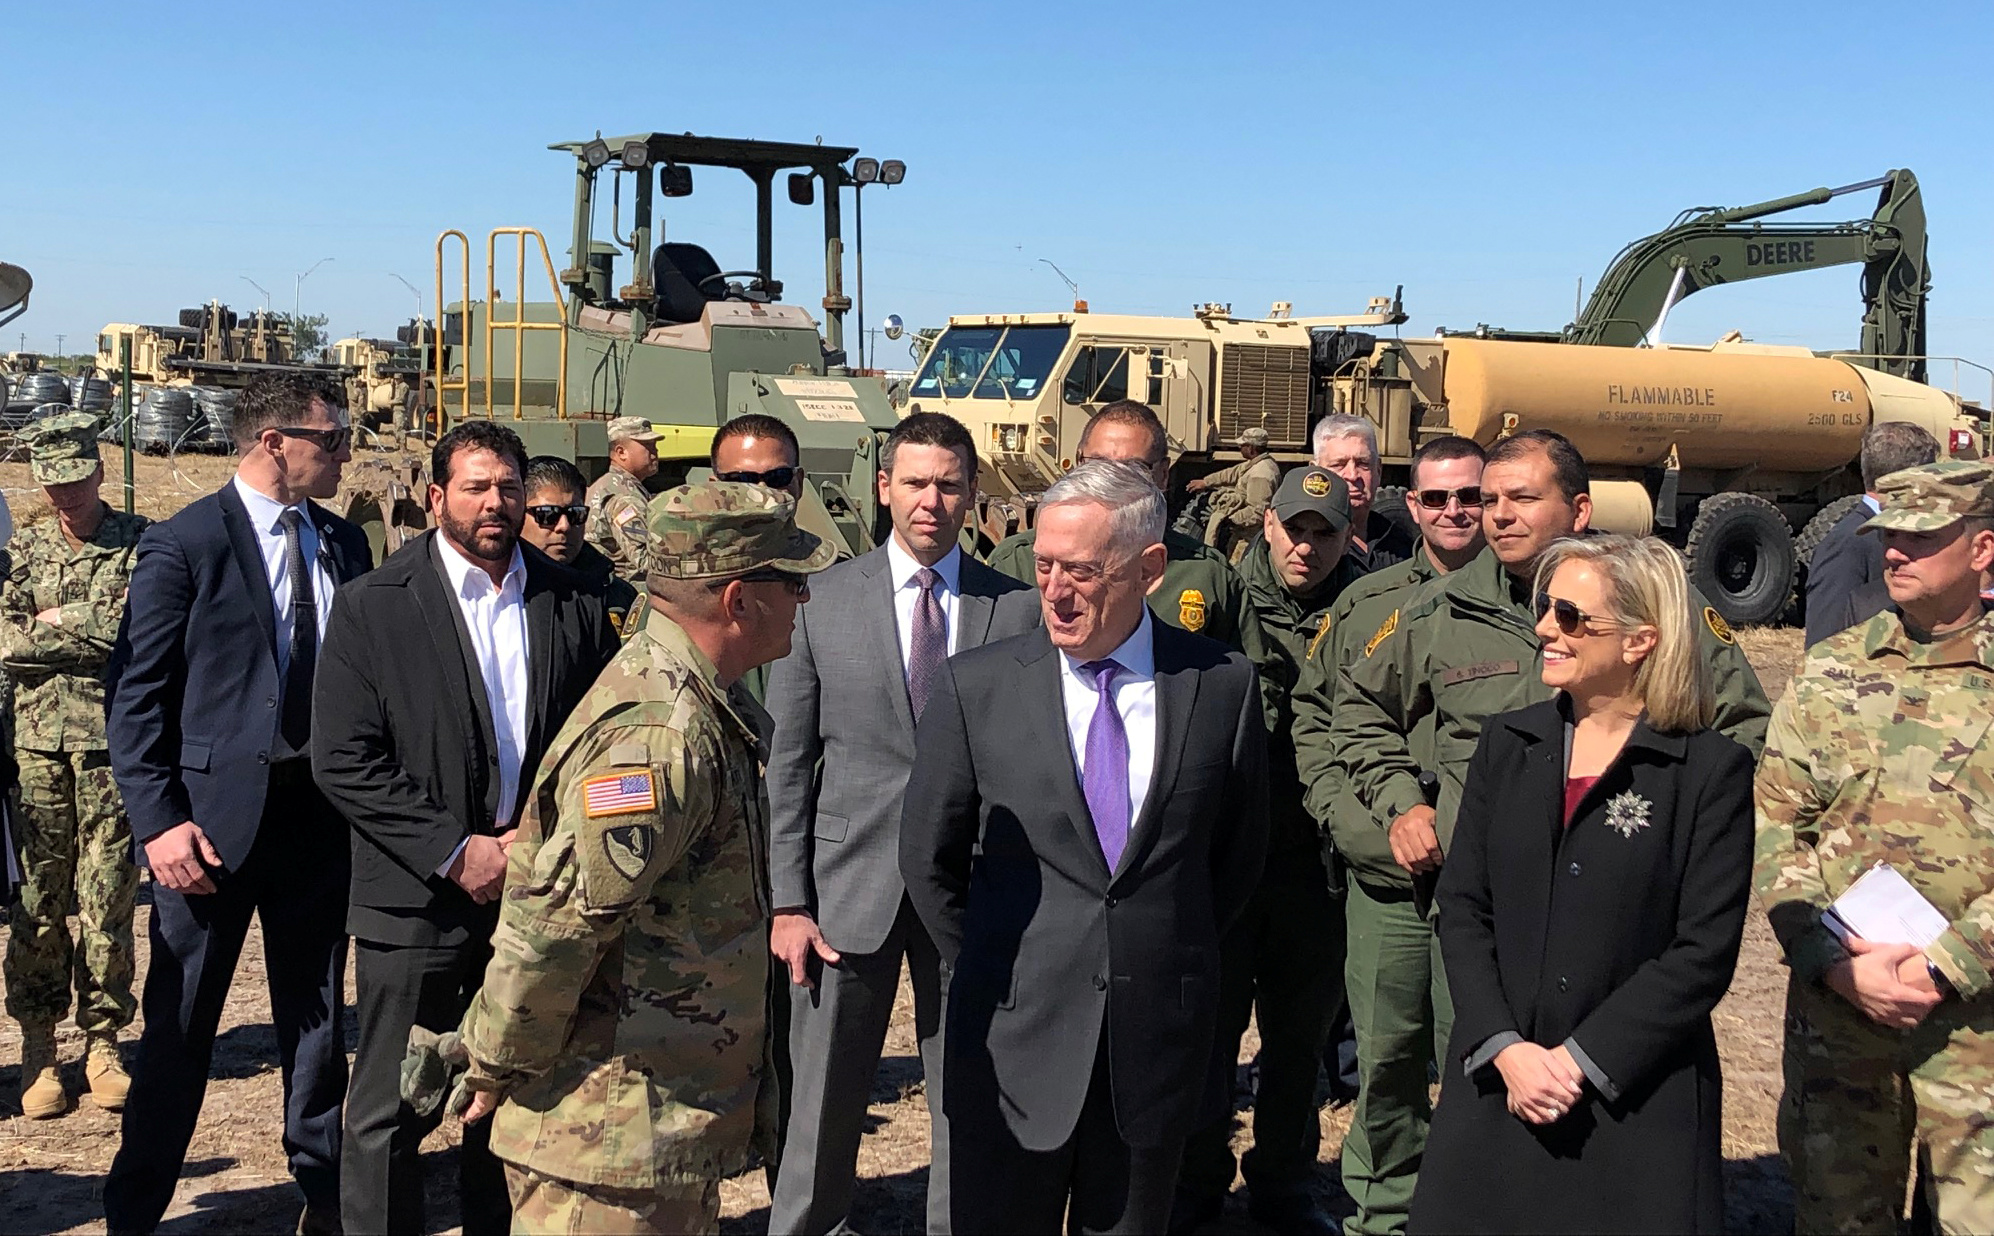 U.S. Defense Secretary Jim Mattis and U.S. Secretary of Homeland Security Kirstjen Nielsen tour Base Camp Donna in Donna, Texas, U.S., November 14, 2018. REUTERS/Phil Stewart